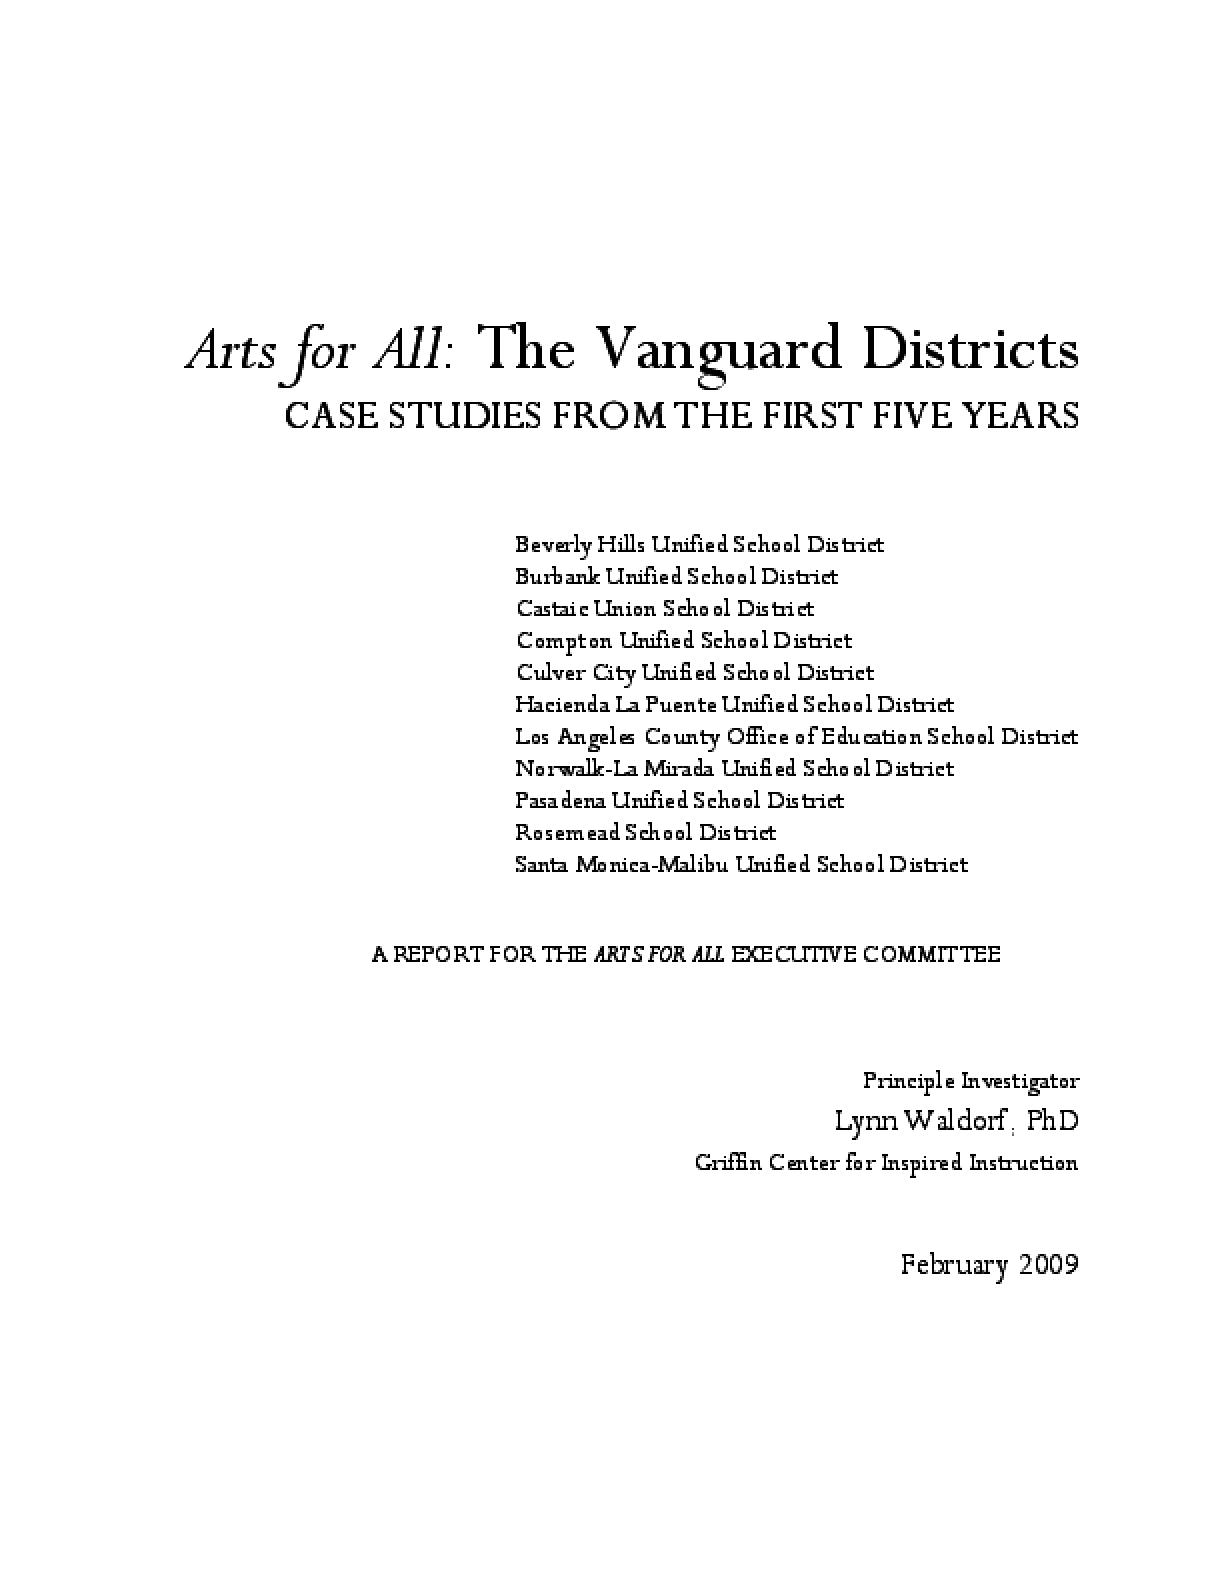 Arts for All: the Vanguard Districts Case Studies